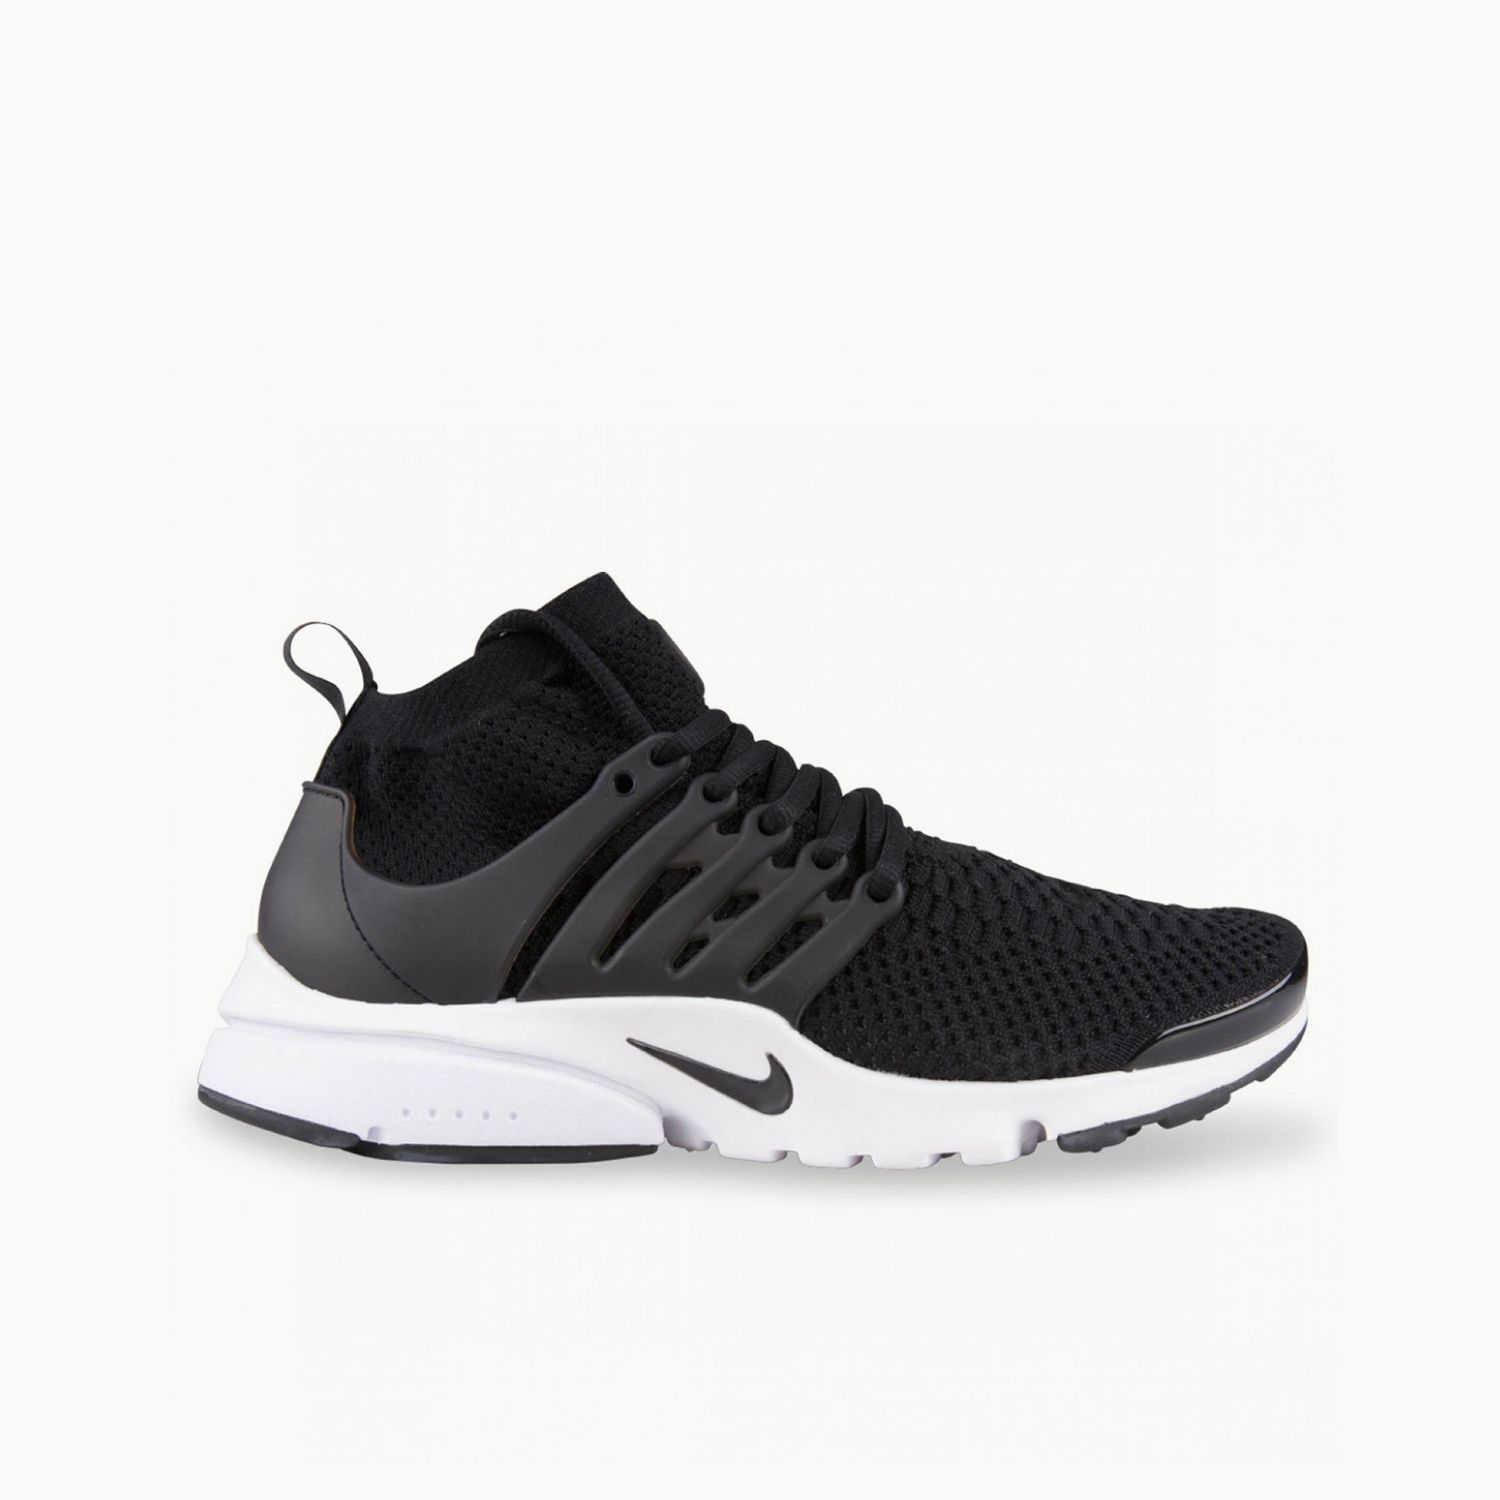 so cheap new release no sale tax Nike AIR PRESTO ULTRA FLYKNIT WOMENS | Sneakers fashion, Sneakers ...